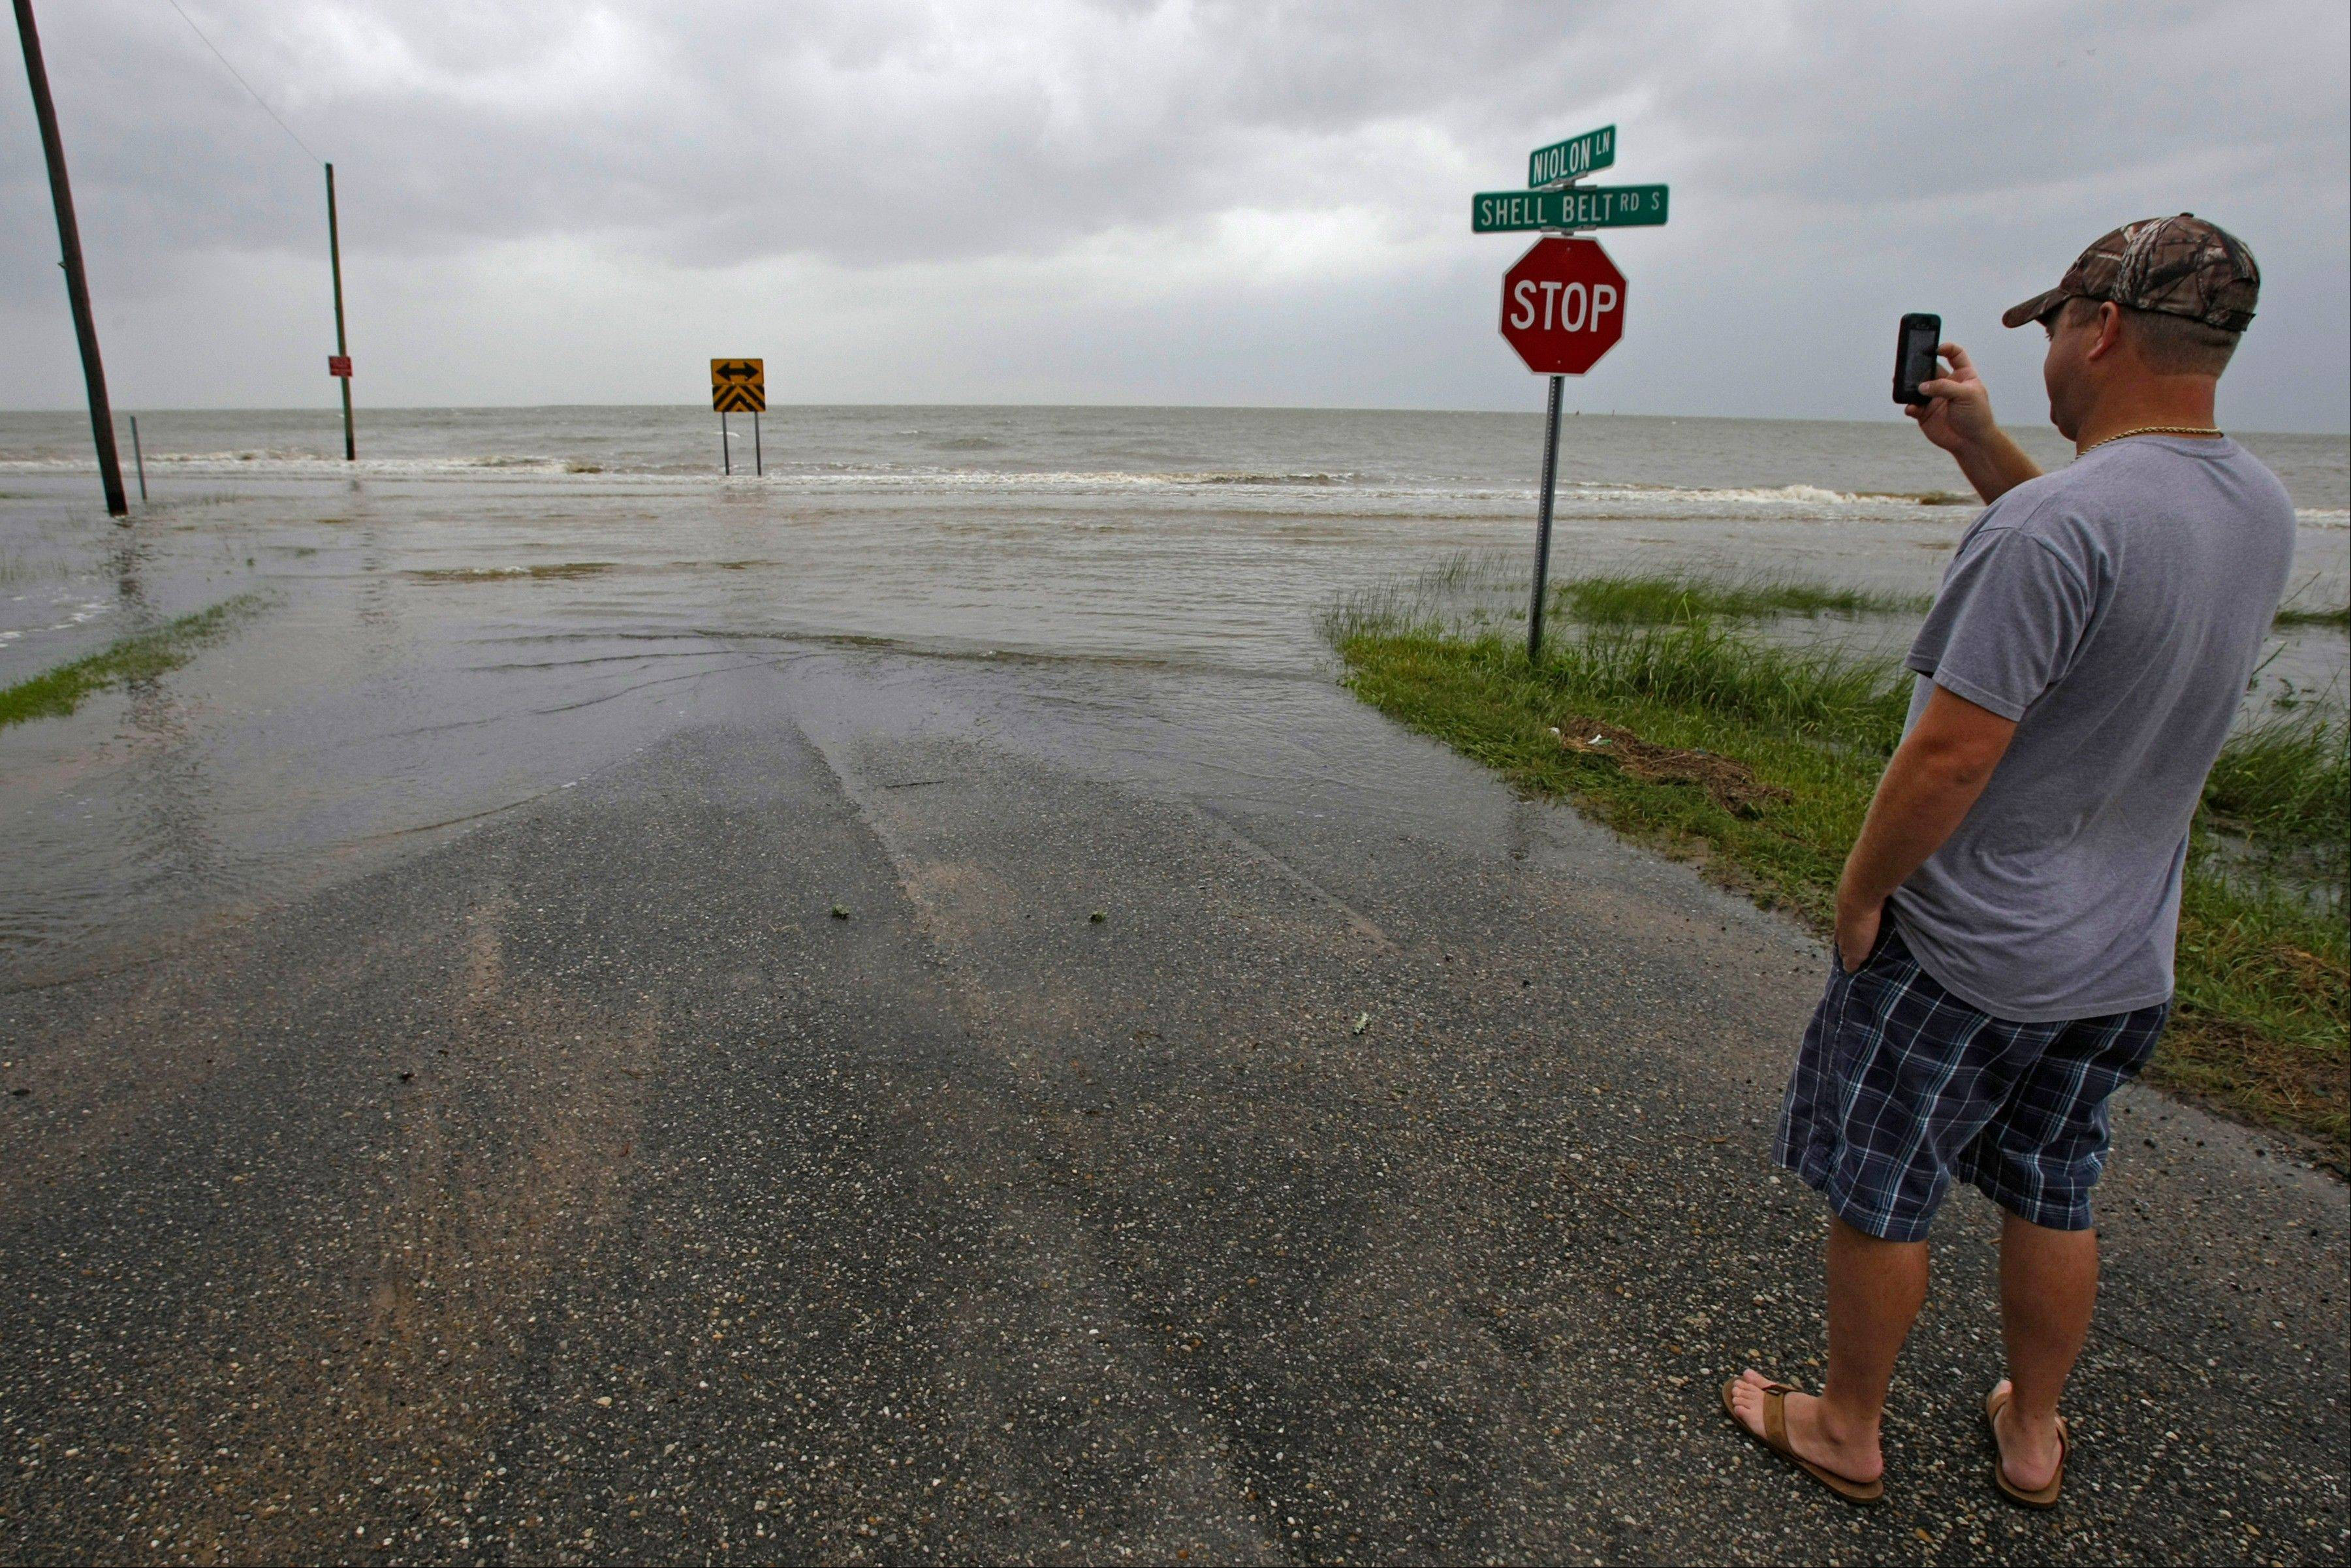 Kevin Clark of Irvington uses his smart phone to photograph the rising waters of the Mississippi sound as they push on to Shell Belt Road at Niolon Lane Tuesday, Aug. 28, 2012 in Bayou La Batre, Ala.